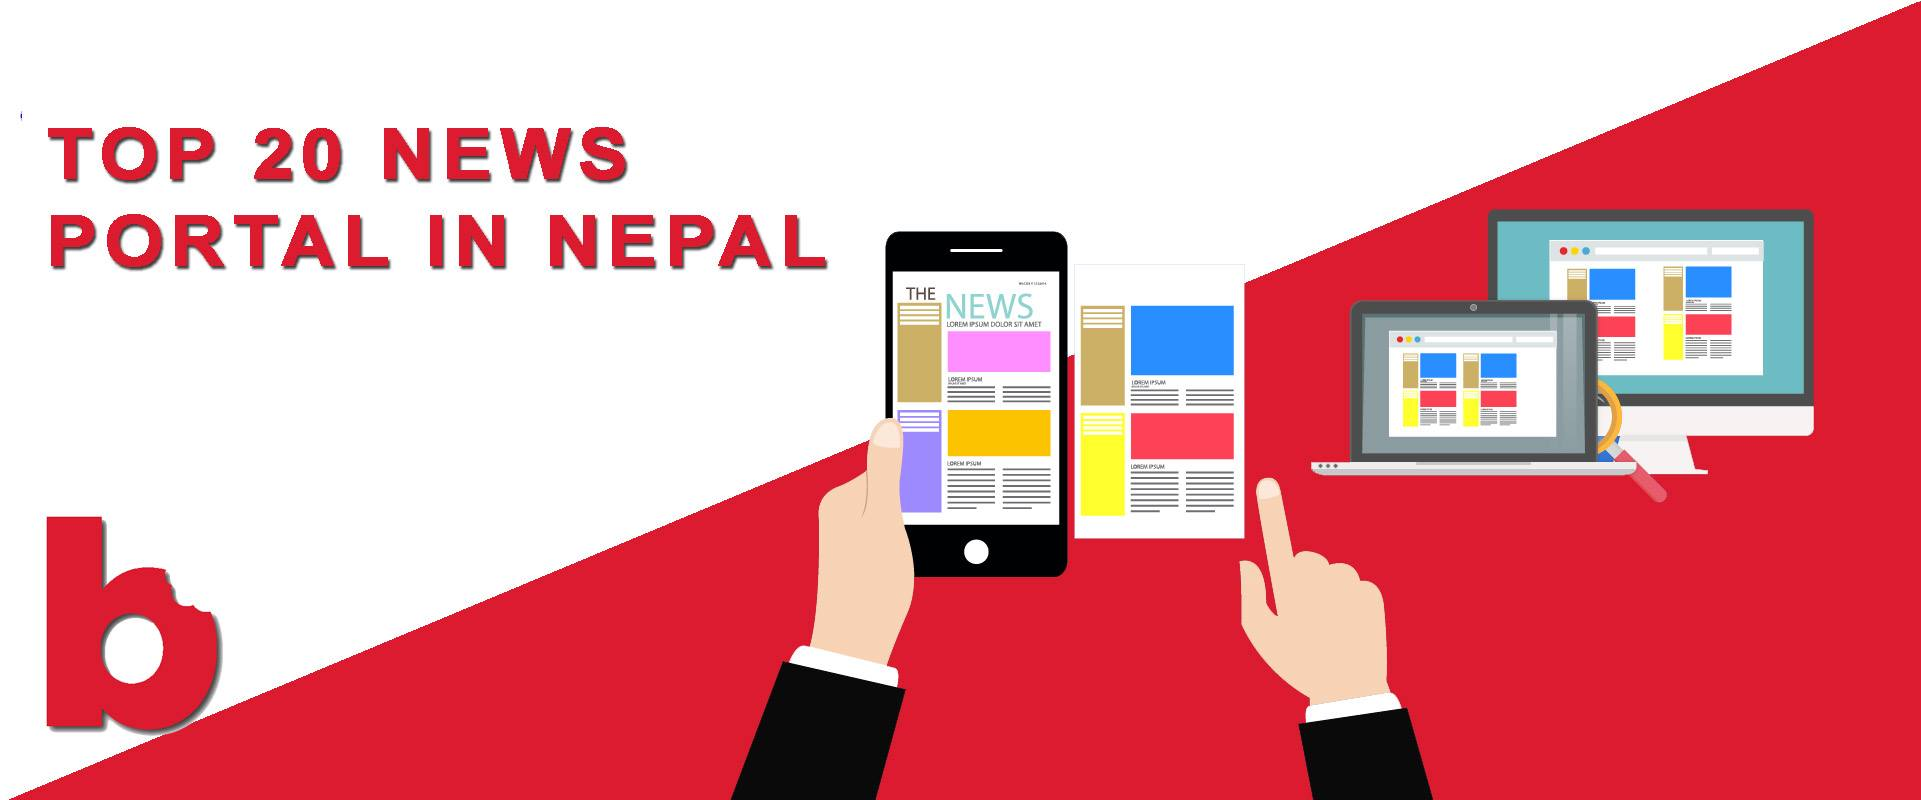 top 20 news portals in nepal